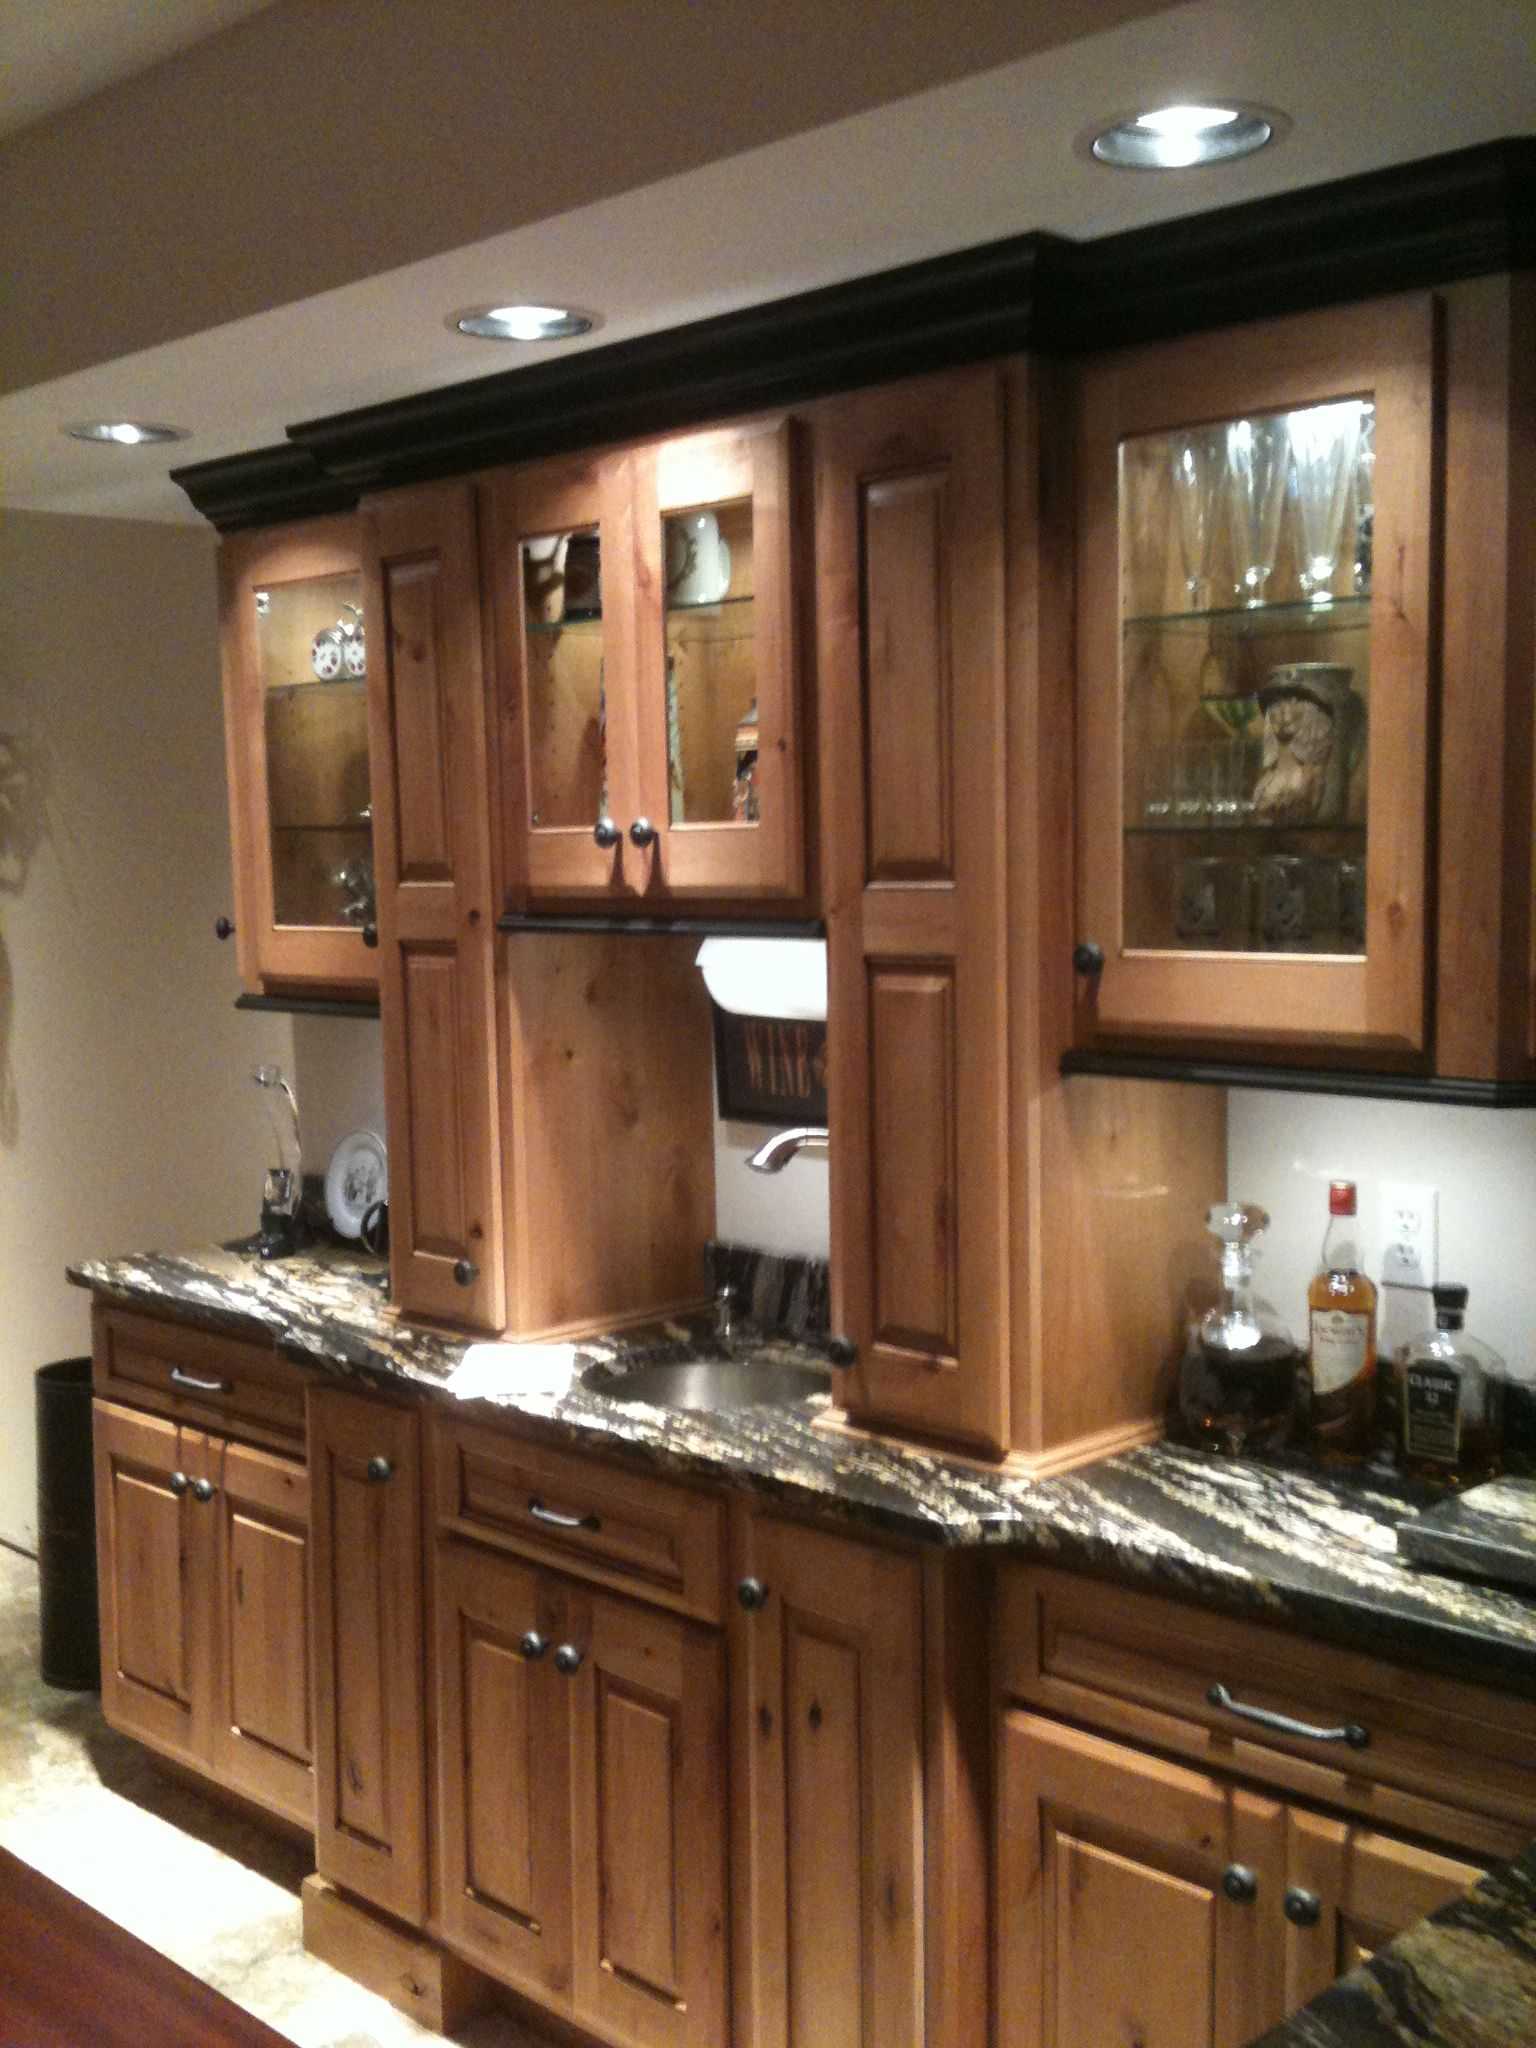 Knotty Alder Cabinetry Paint Black Crown Mold And Under Cabinet Mold This Is A Basement Bar Alder Kitchen Cabinets Wooden Kitchen Cabinets Cabinet Molding